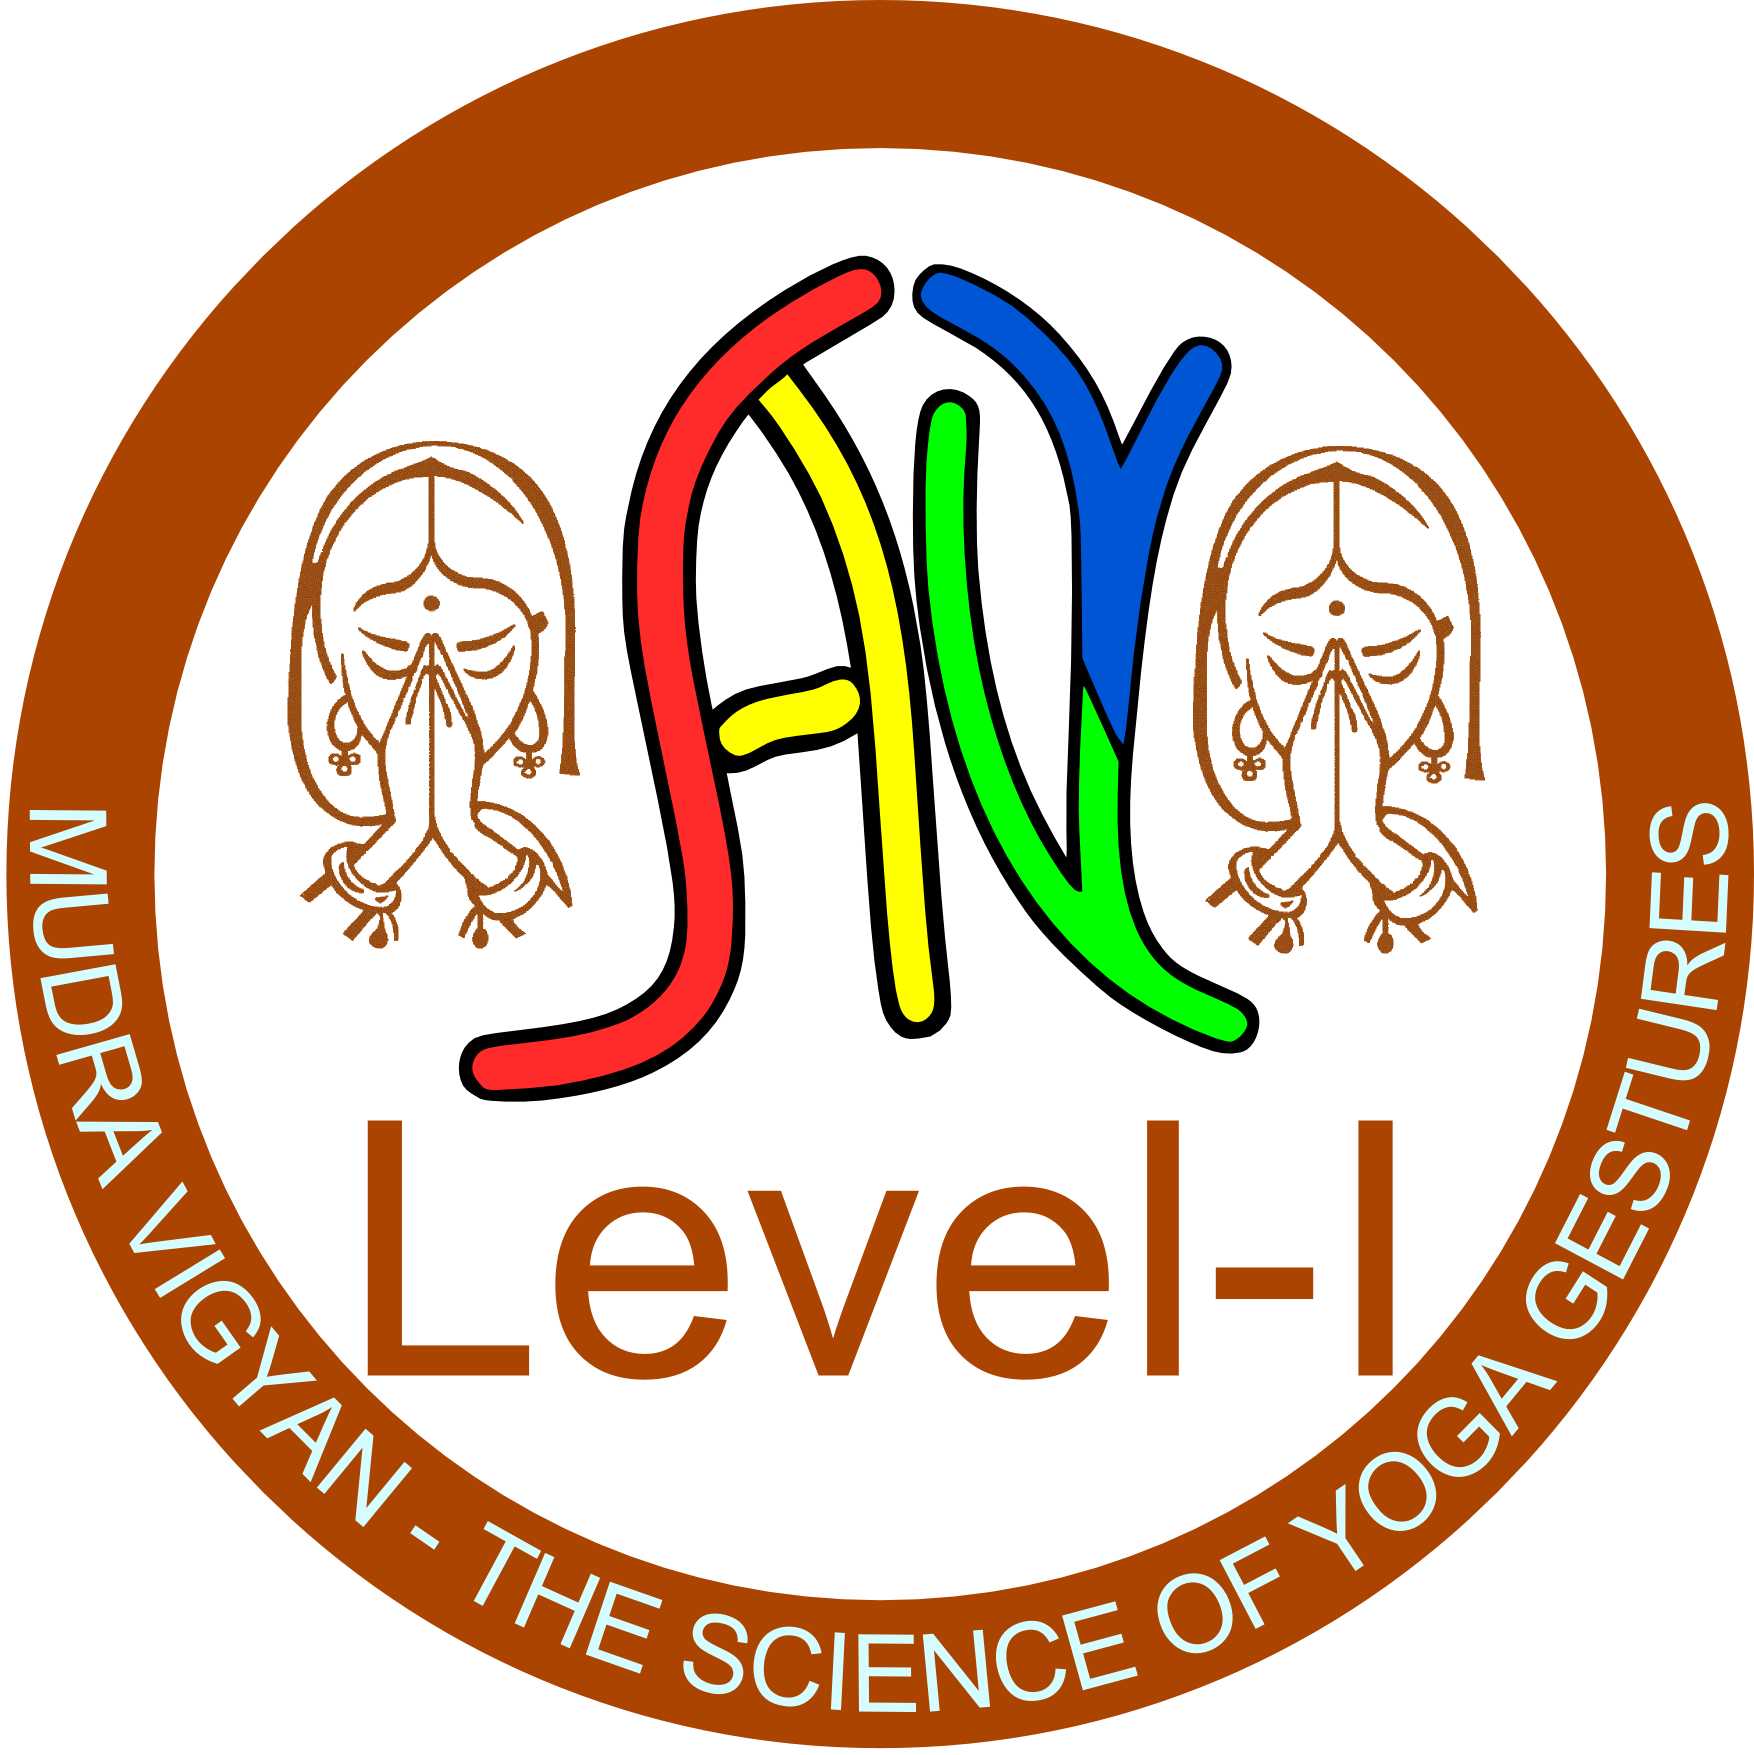 Registration Open for Mudra Vigyan - The Science of Yoga Gestures Level I